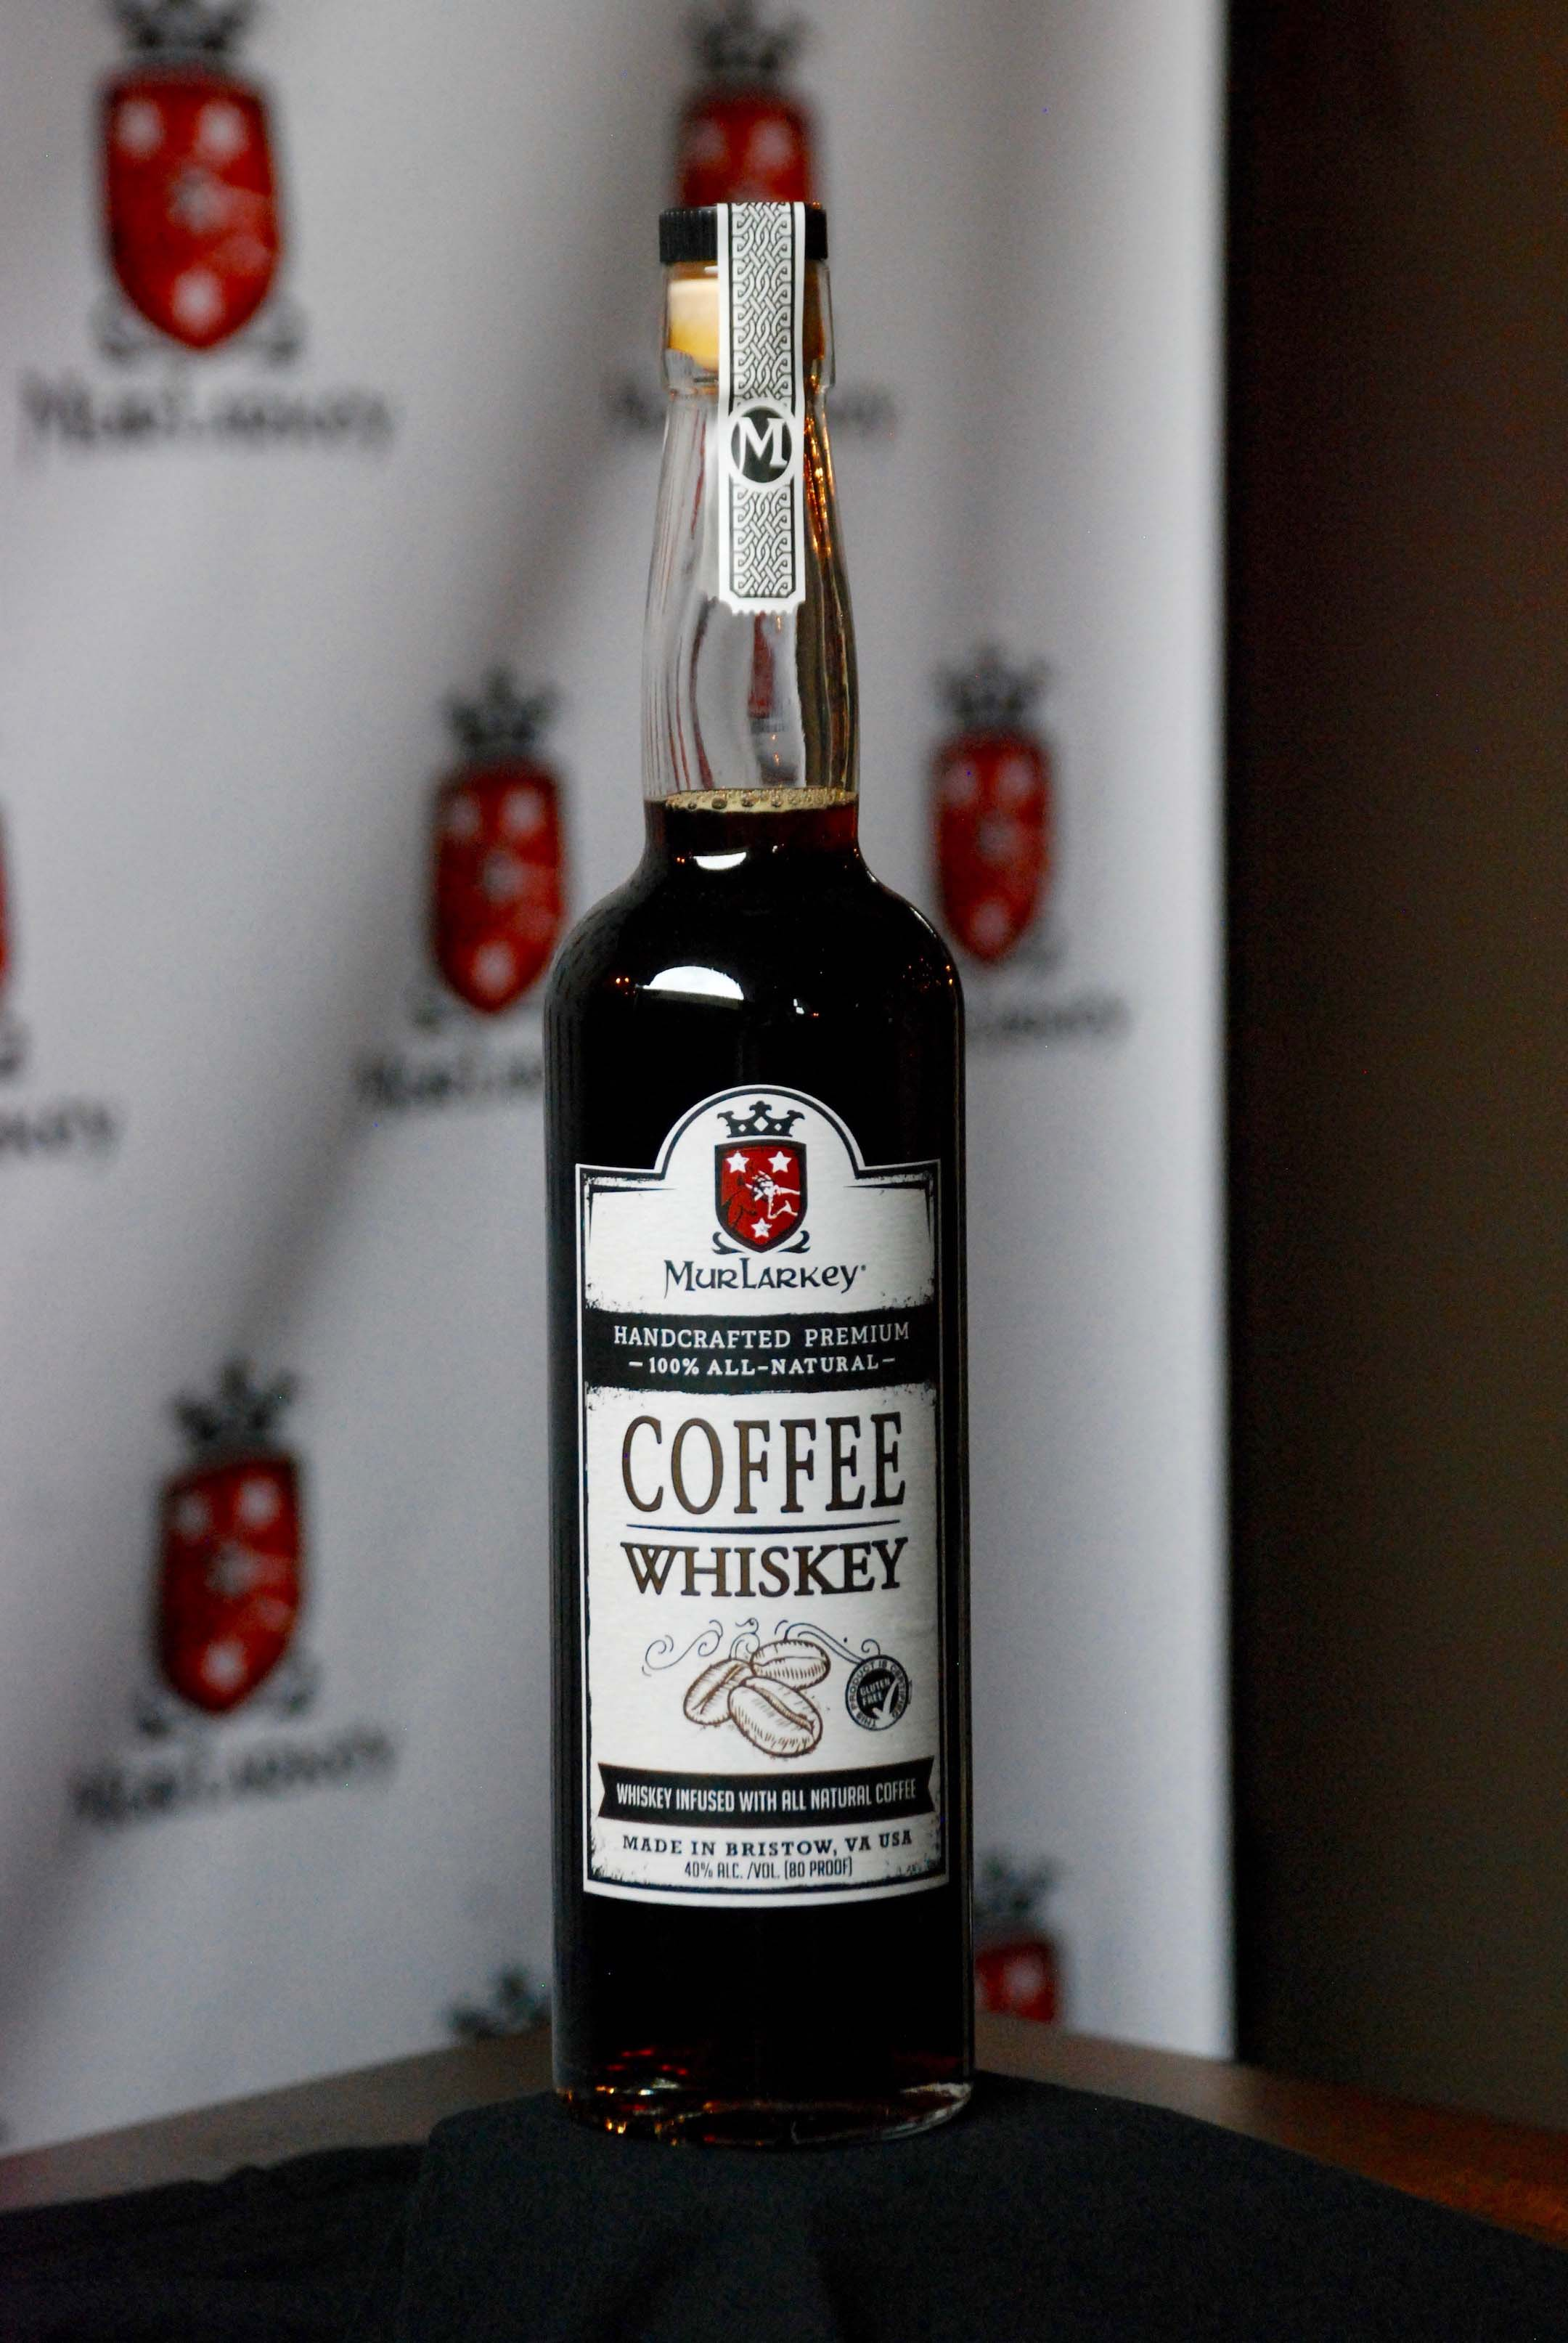 Coffee Infused Whiskey, MurLarkey Distilled Spirits